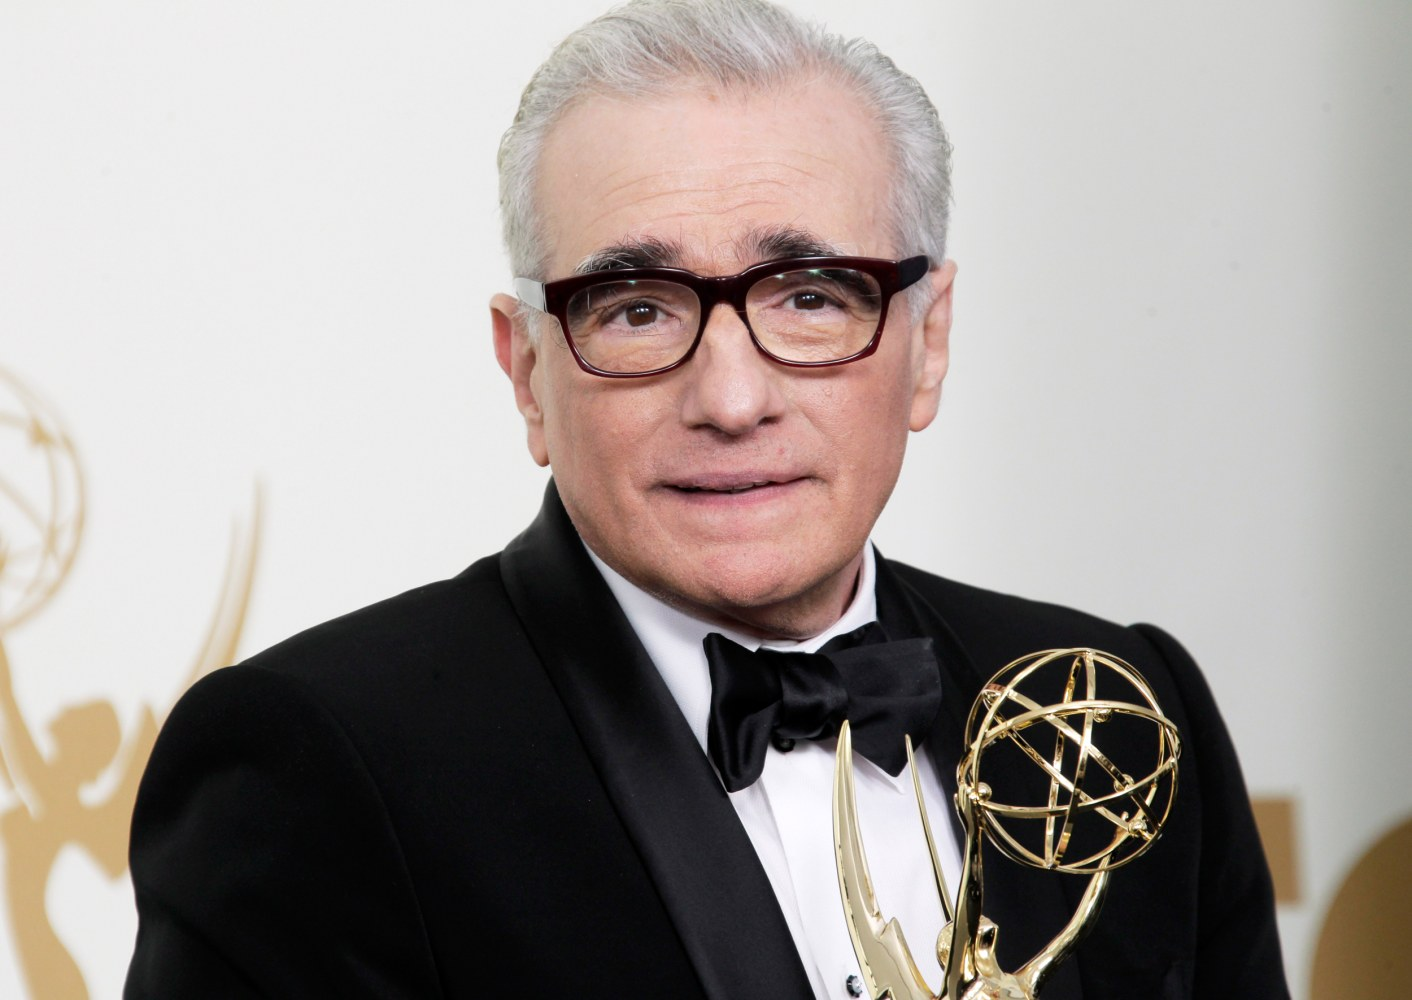 Martin Scorsese Biography   National Endowment for the Humanities